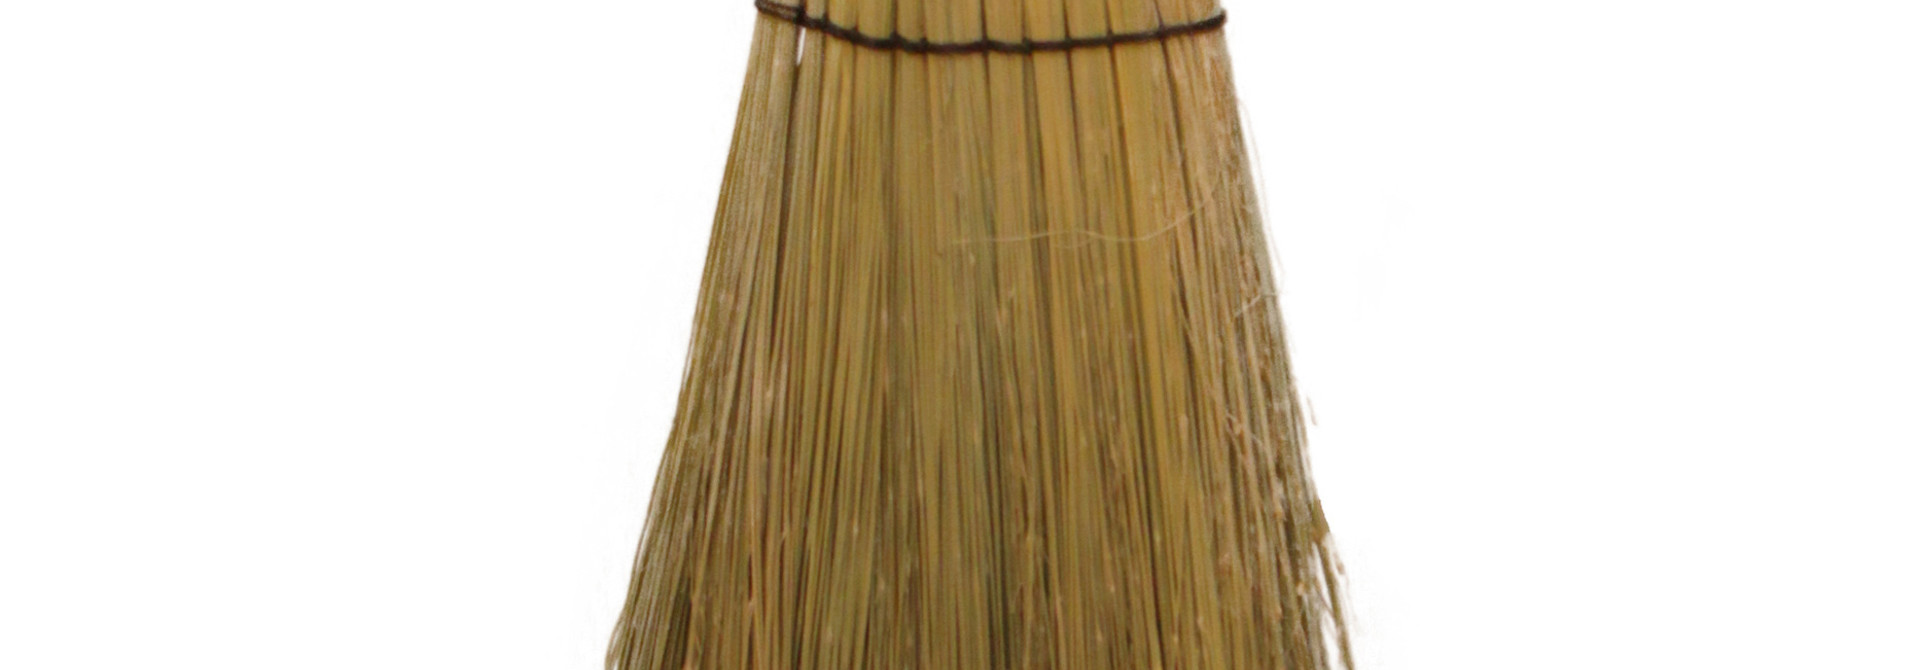 Appalachian Broom